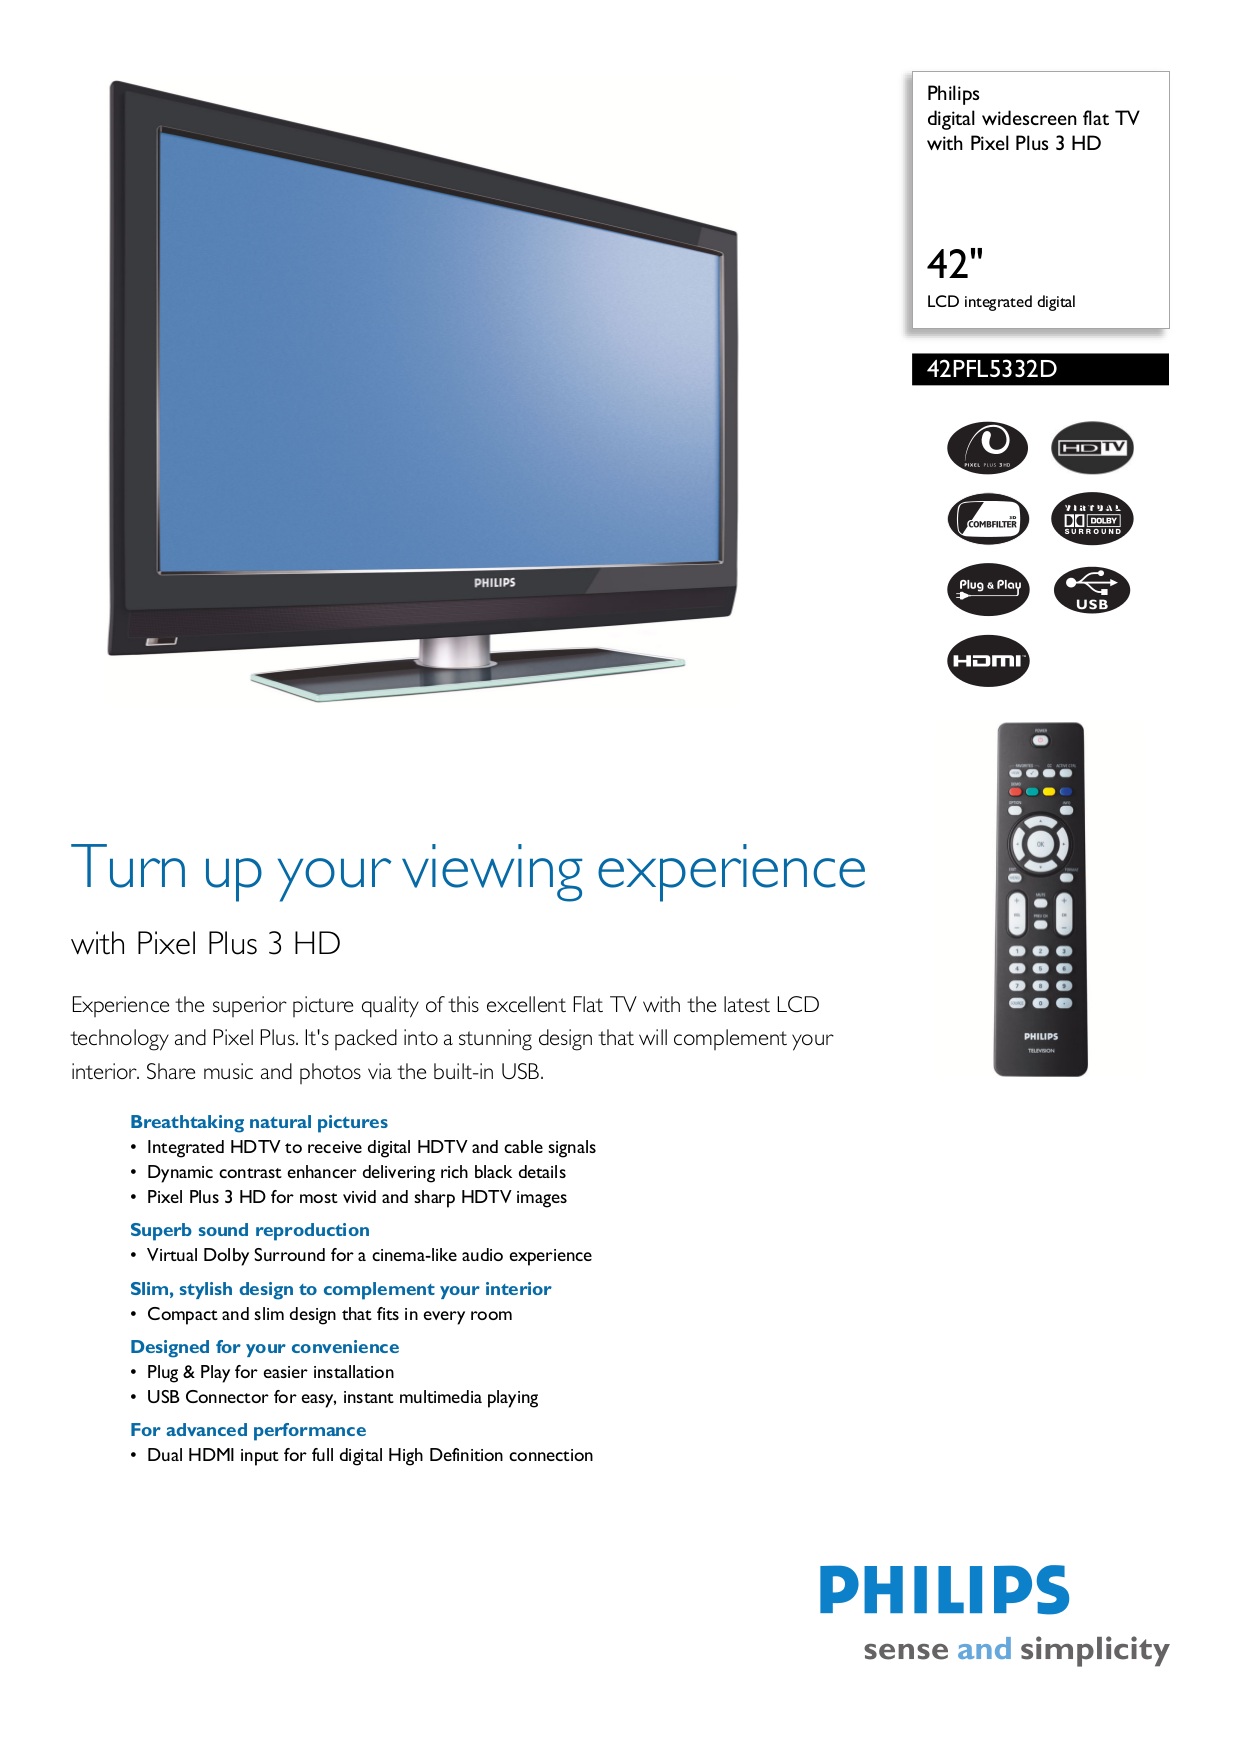 pdf for philips tv 42pfl5332d manual ...